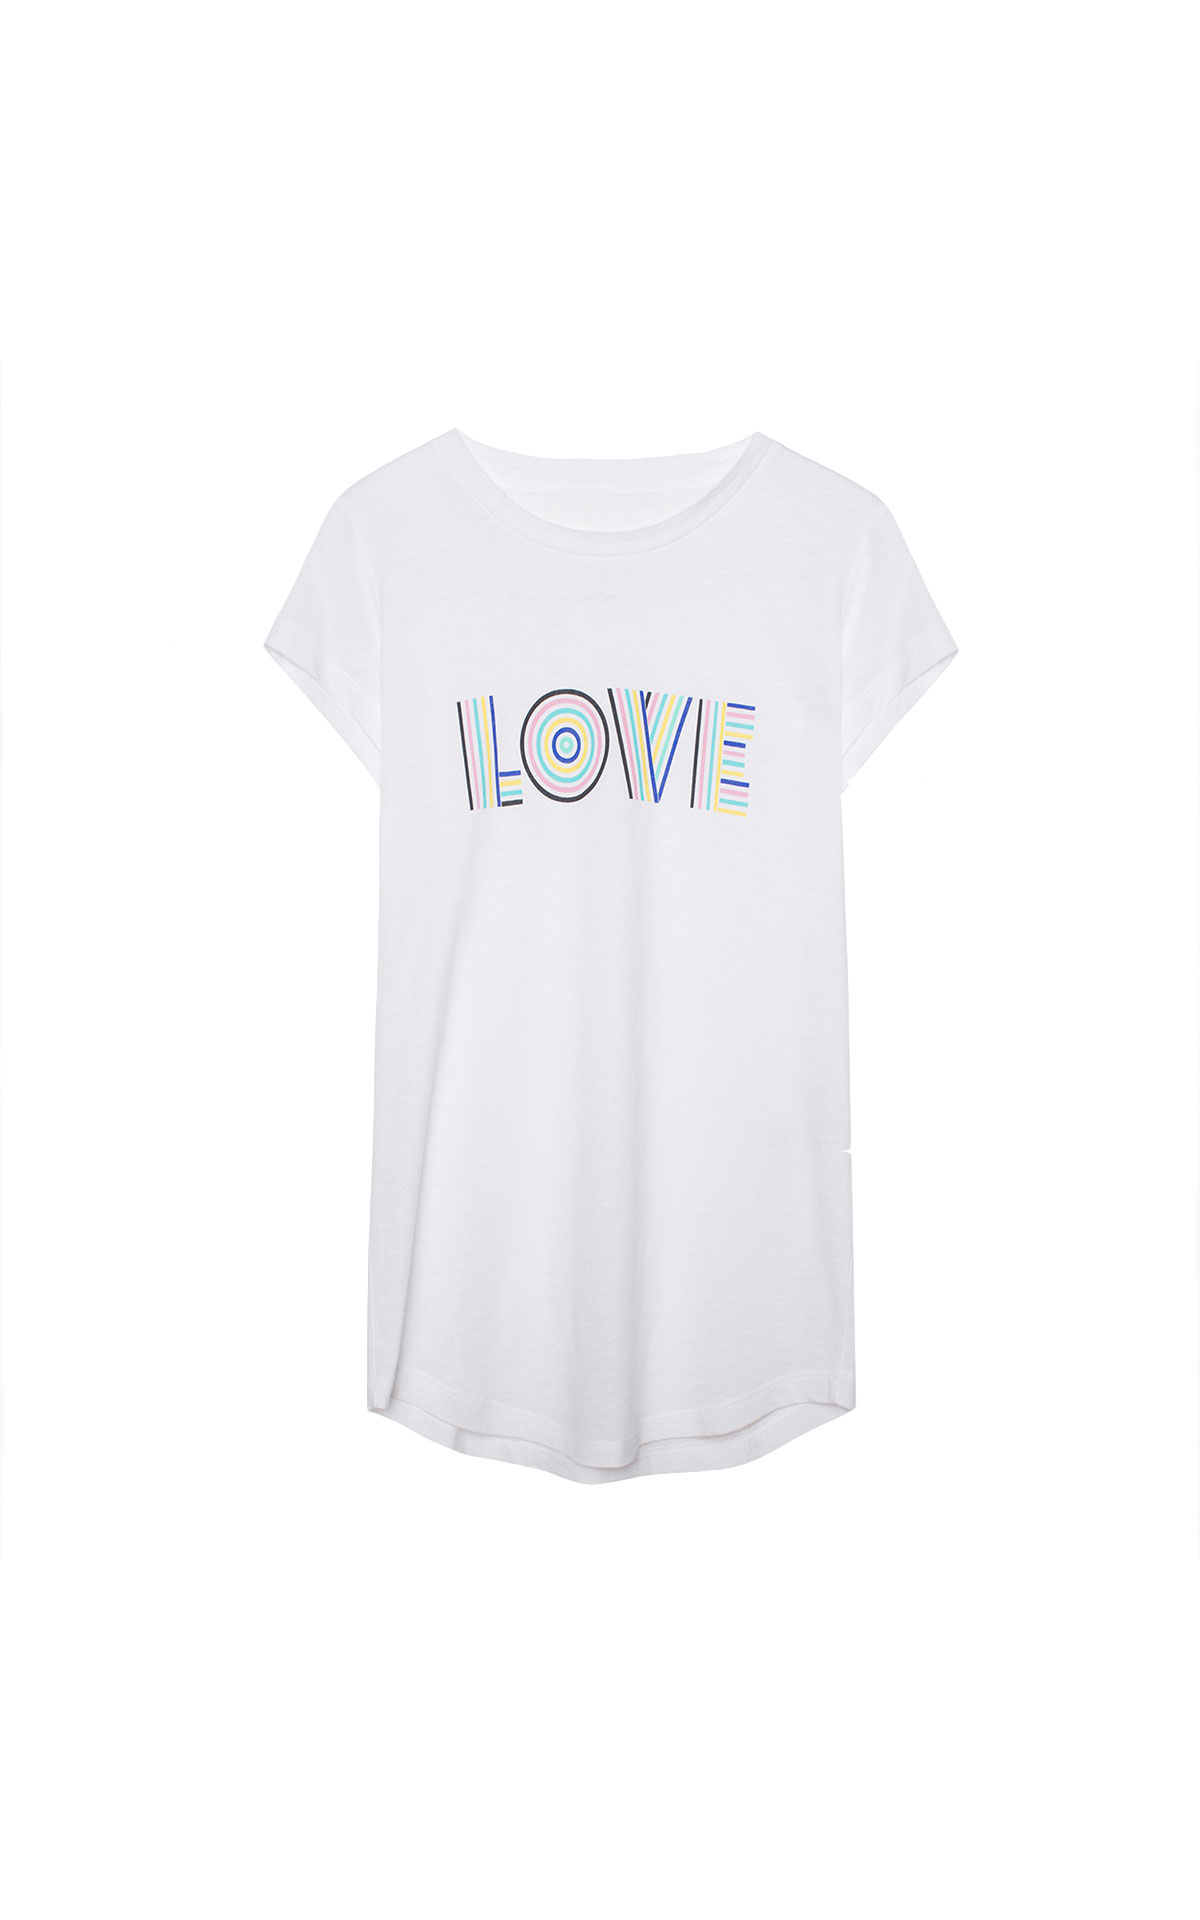 Zadig & Voltaire White love tee from Bicester Village